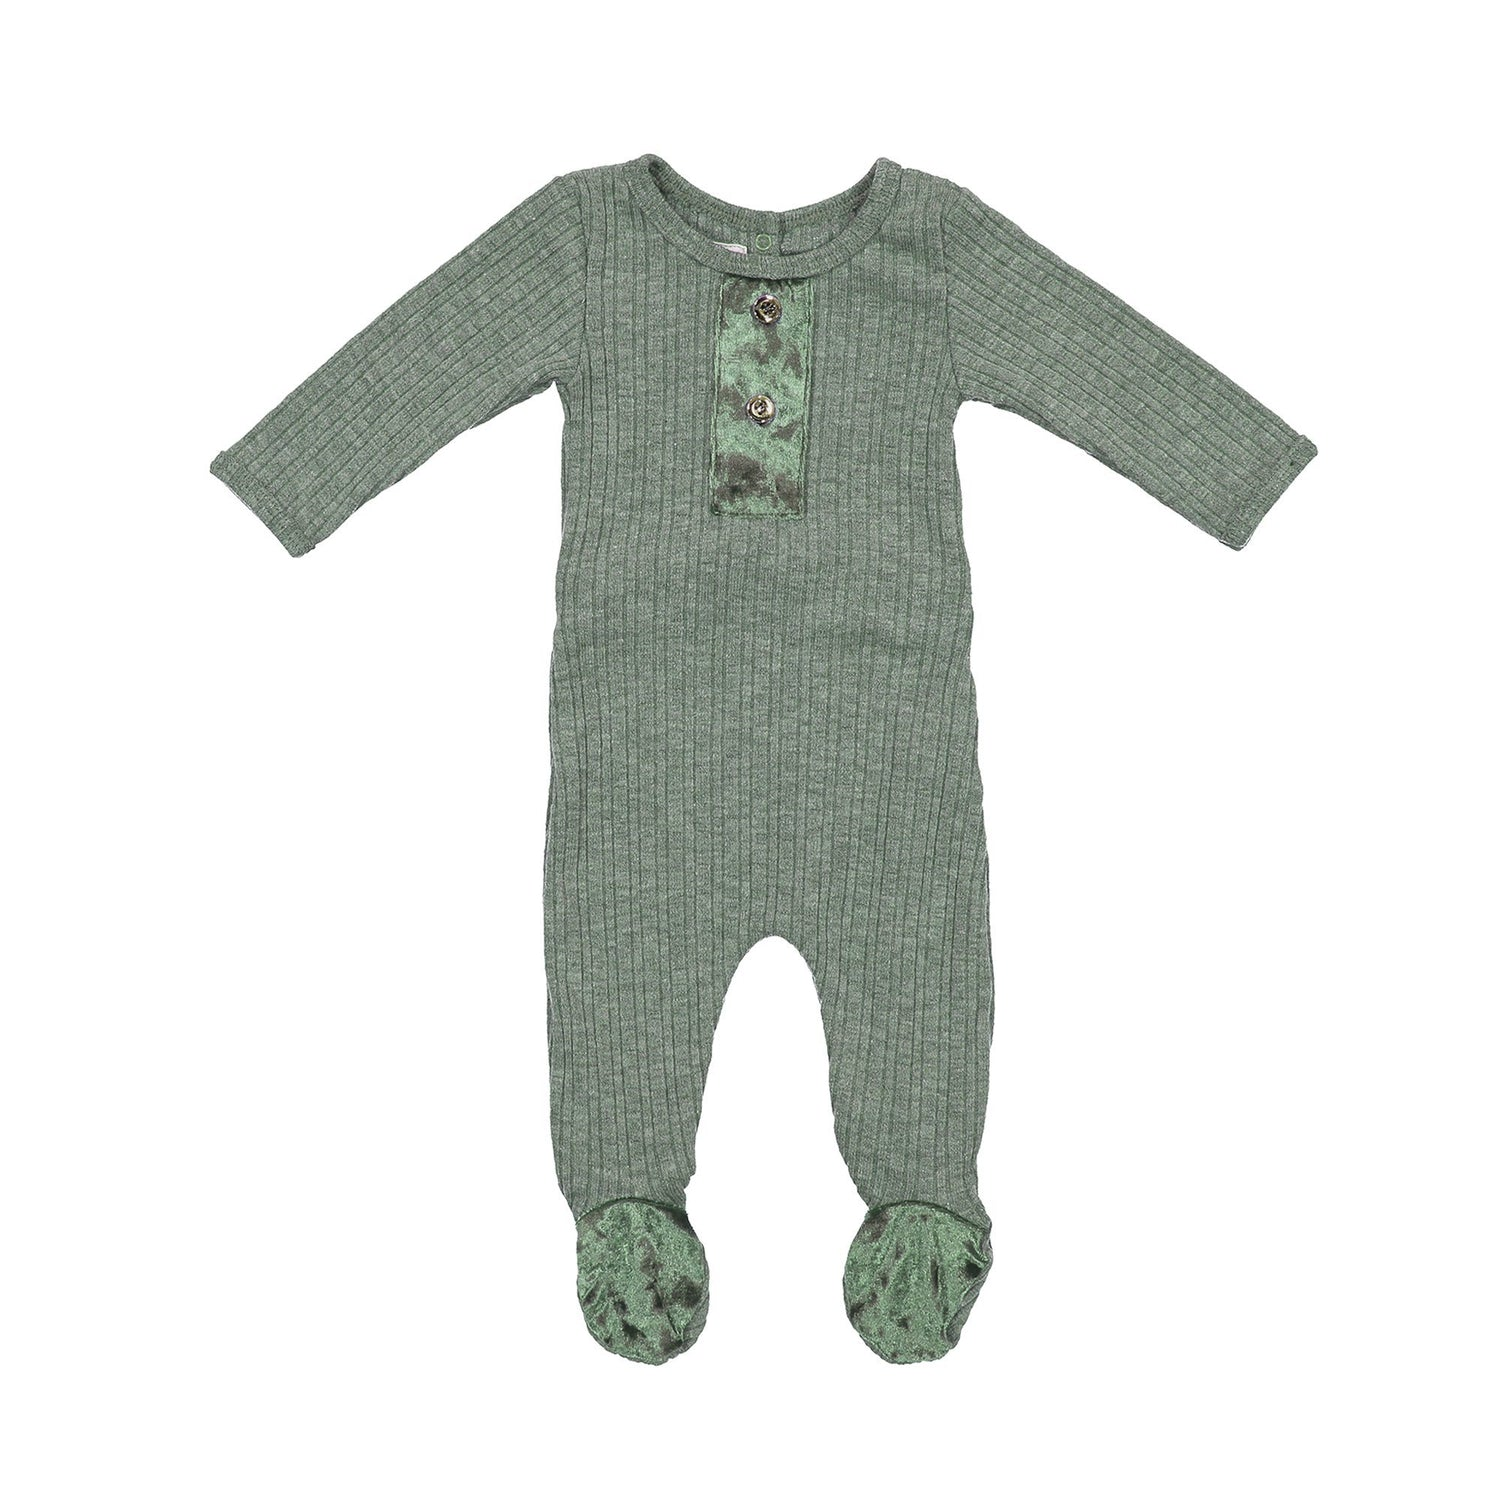 Velour Ribbed Footie Maniere Accessories Olive 3 Month